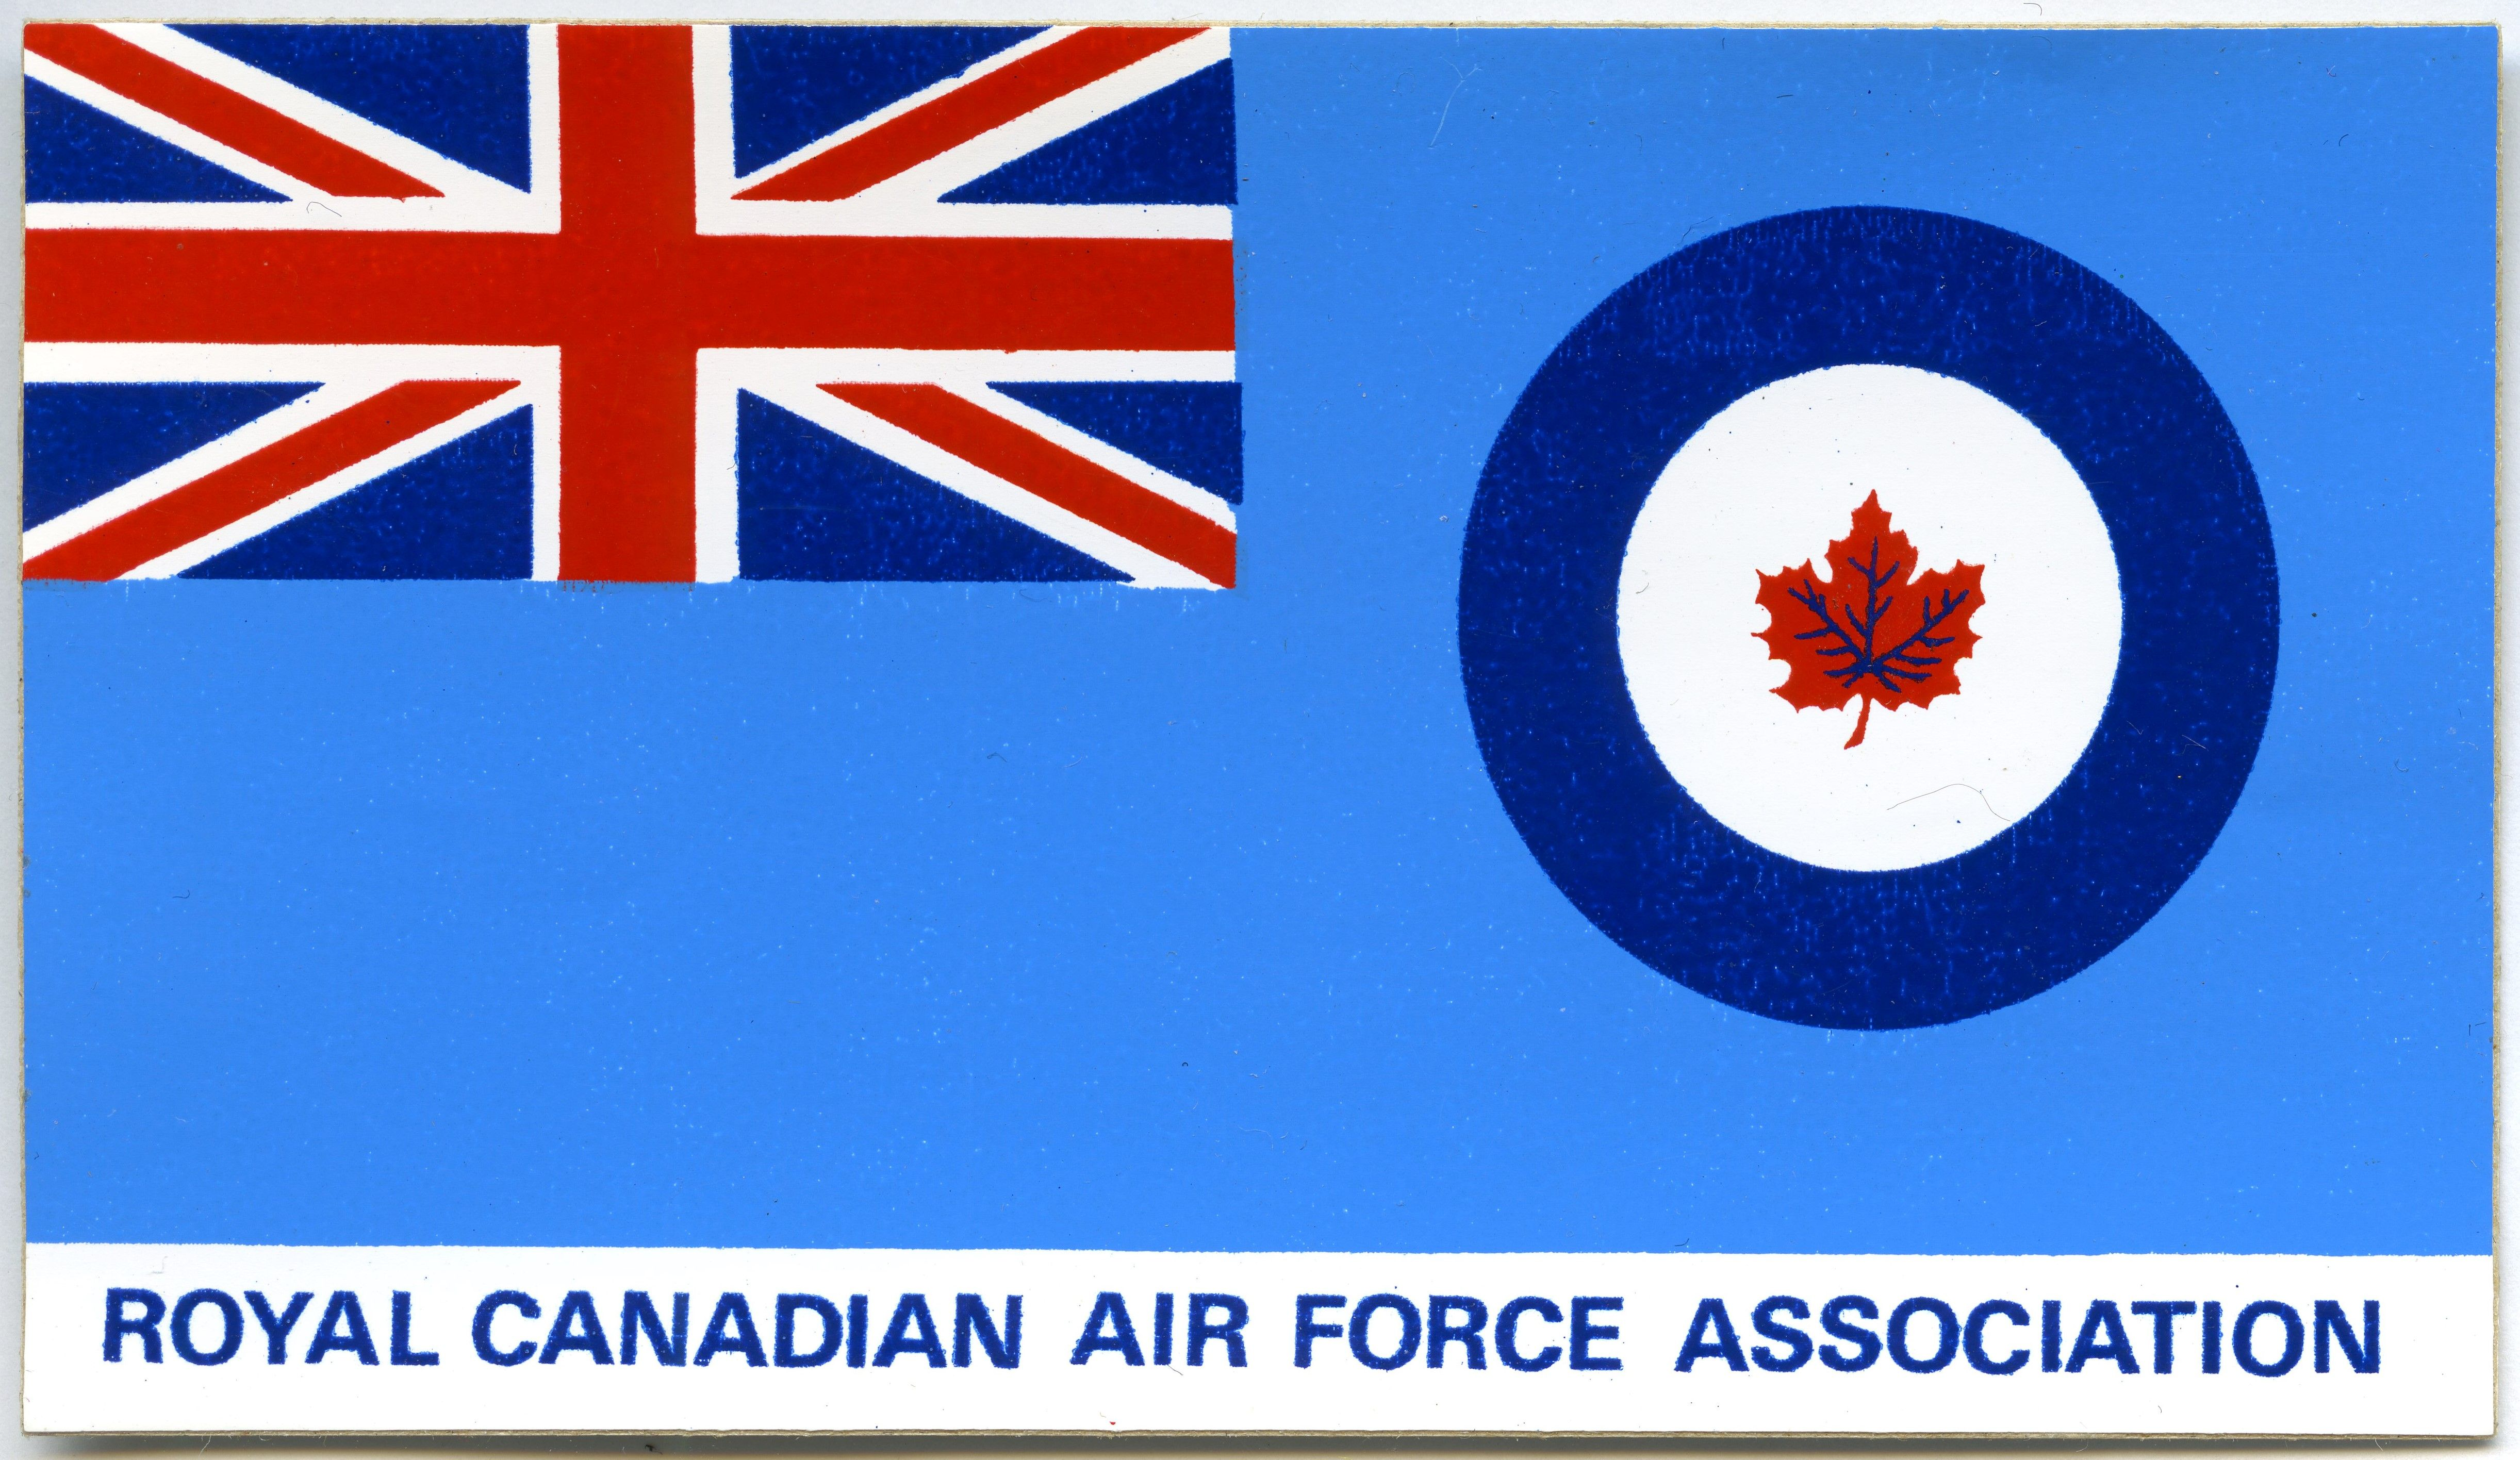 Royal Canadian Air Force Association Canadian military